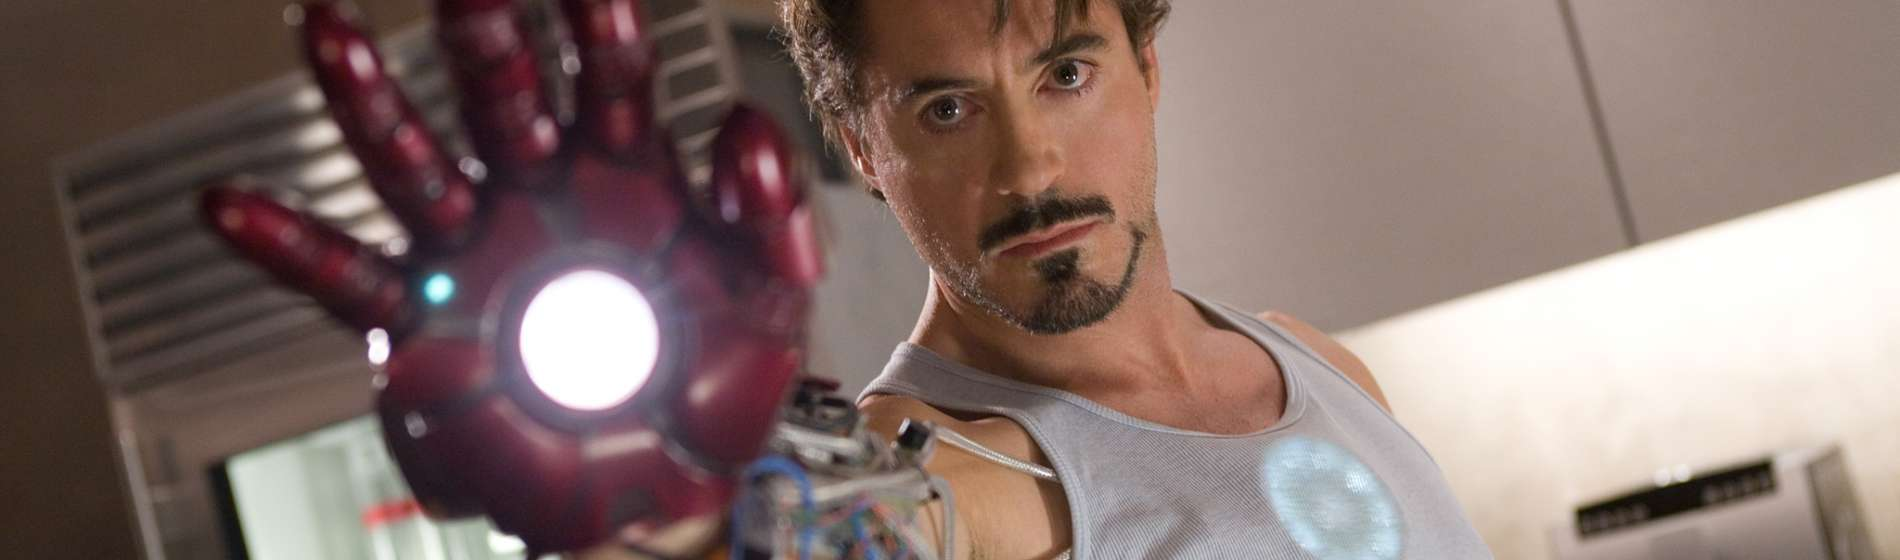 Iron Man (2008) Tony Stark Robert Downey Jr.